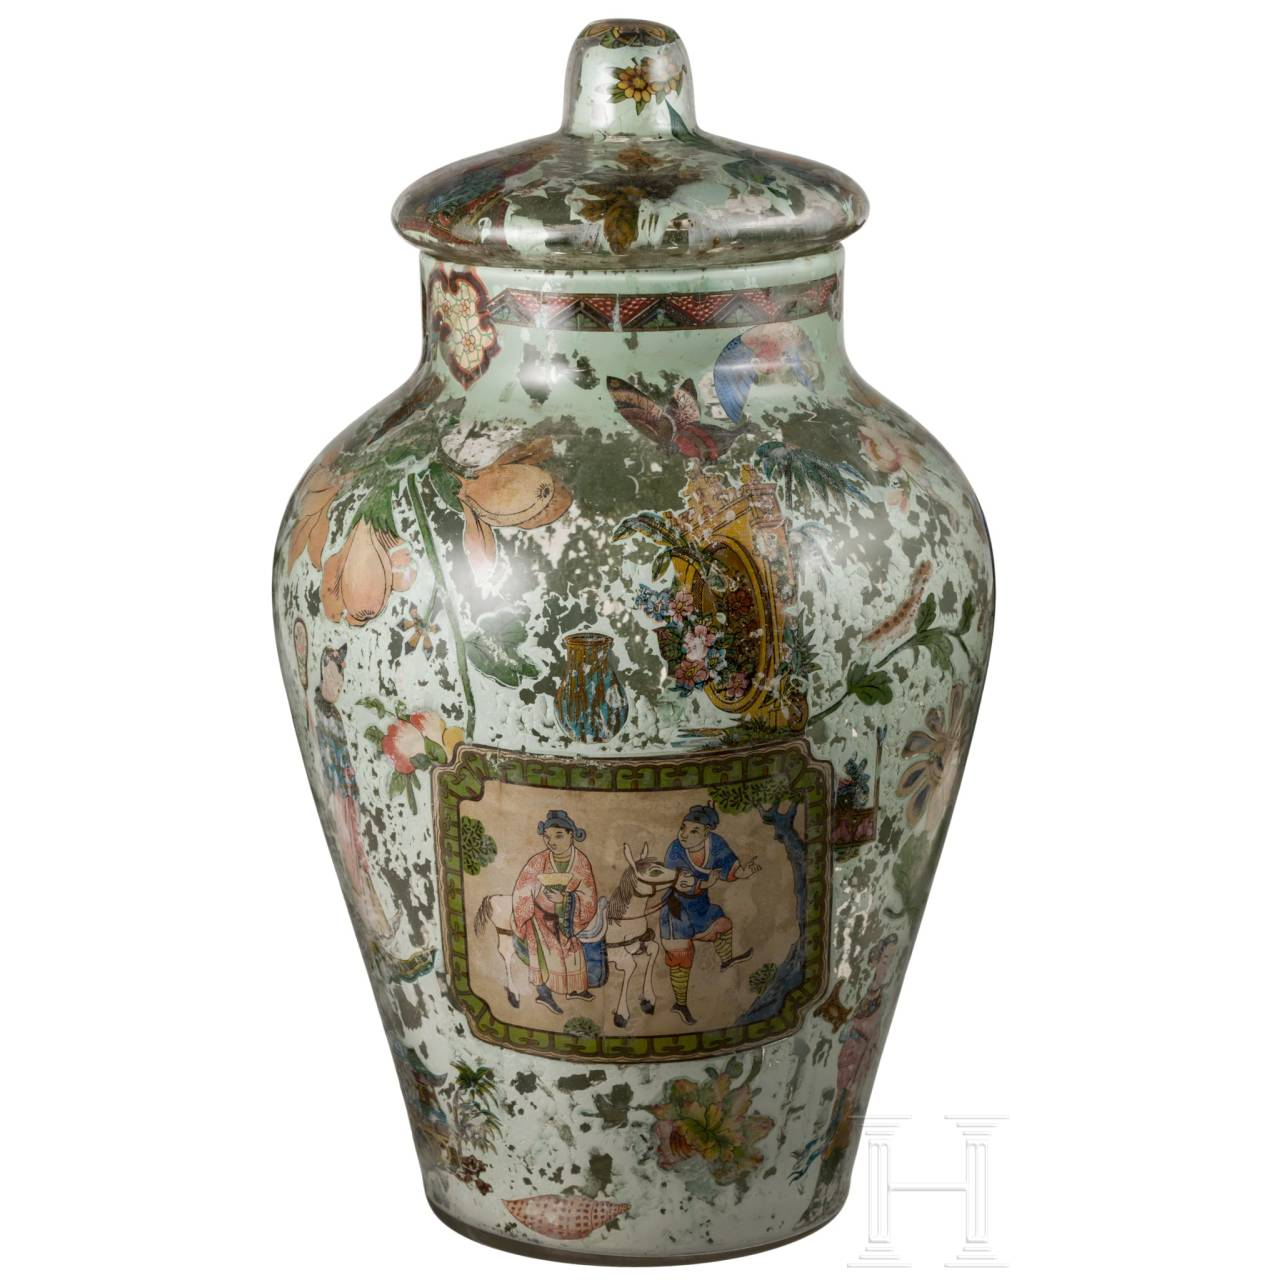 An Italian neoclassical Arte Povera glass vase with Chinoiserie, circa 1800